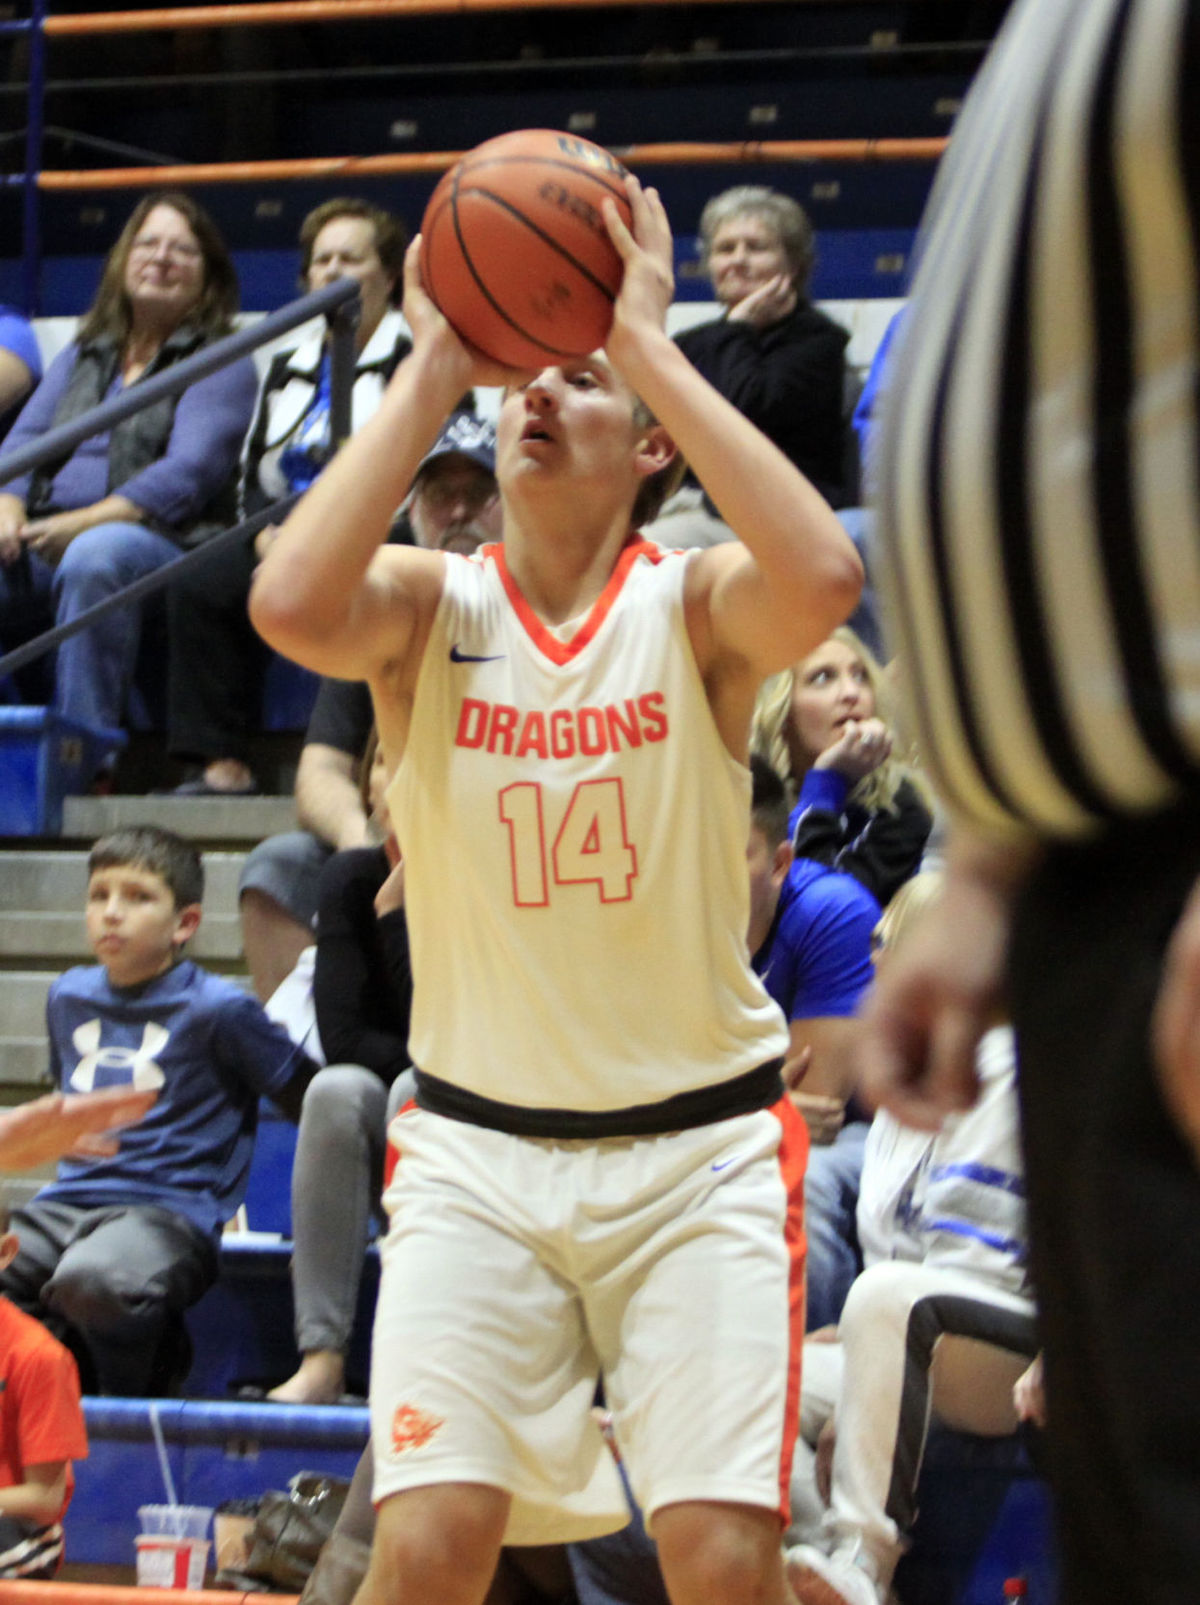 Boys Basketball: Dragons Grit Out Win Over Cougars